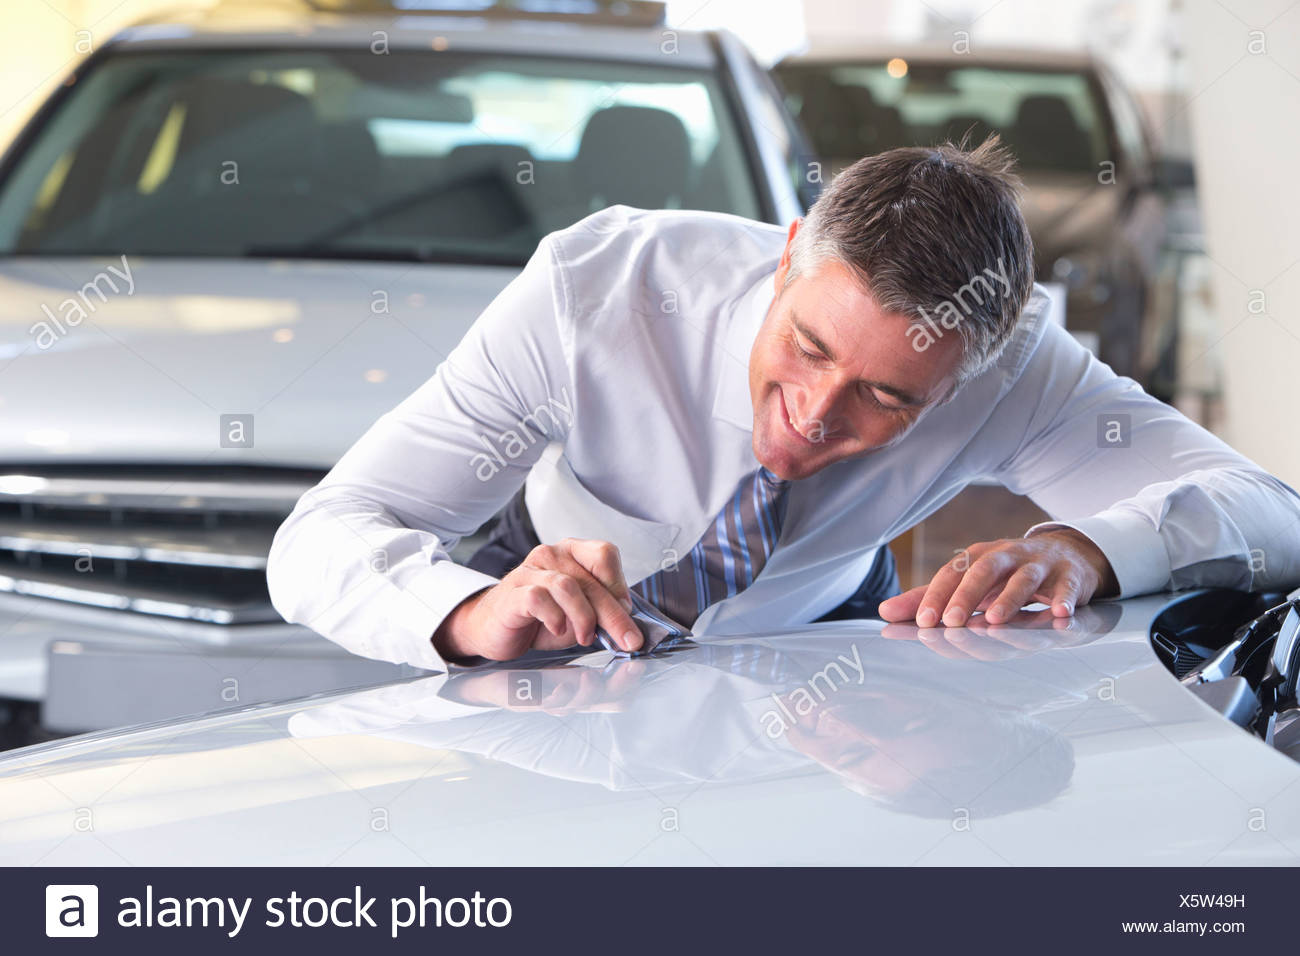 Salesman wiping automobile hood with tie in car dealership showroom - Stock Image